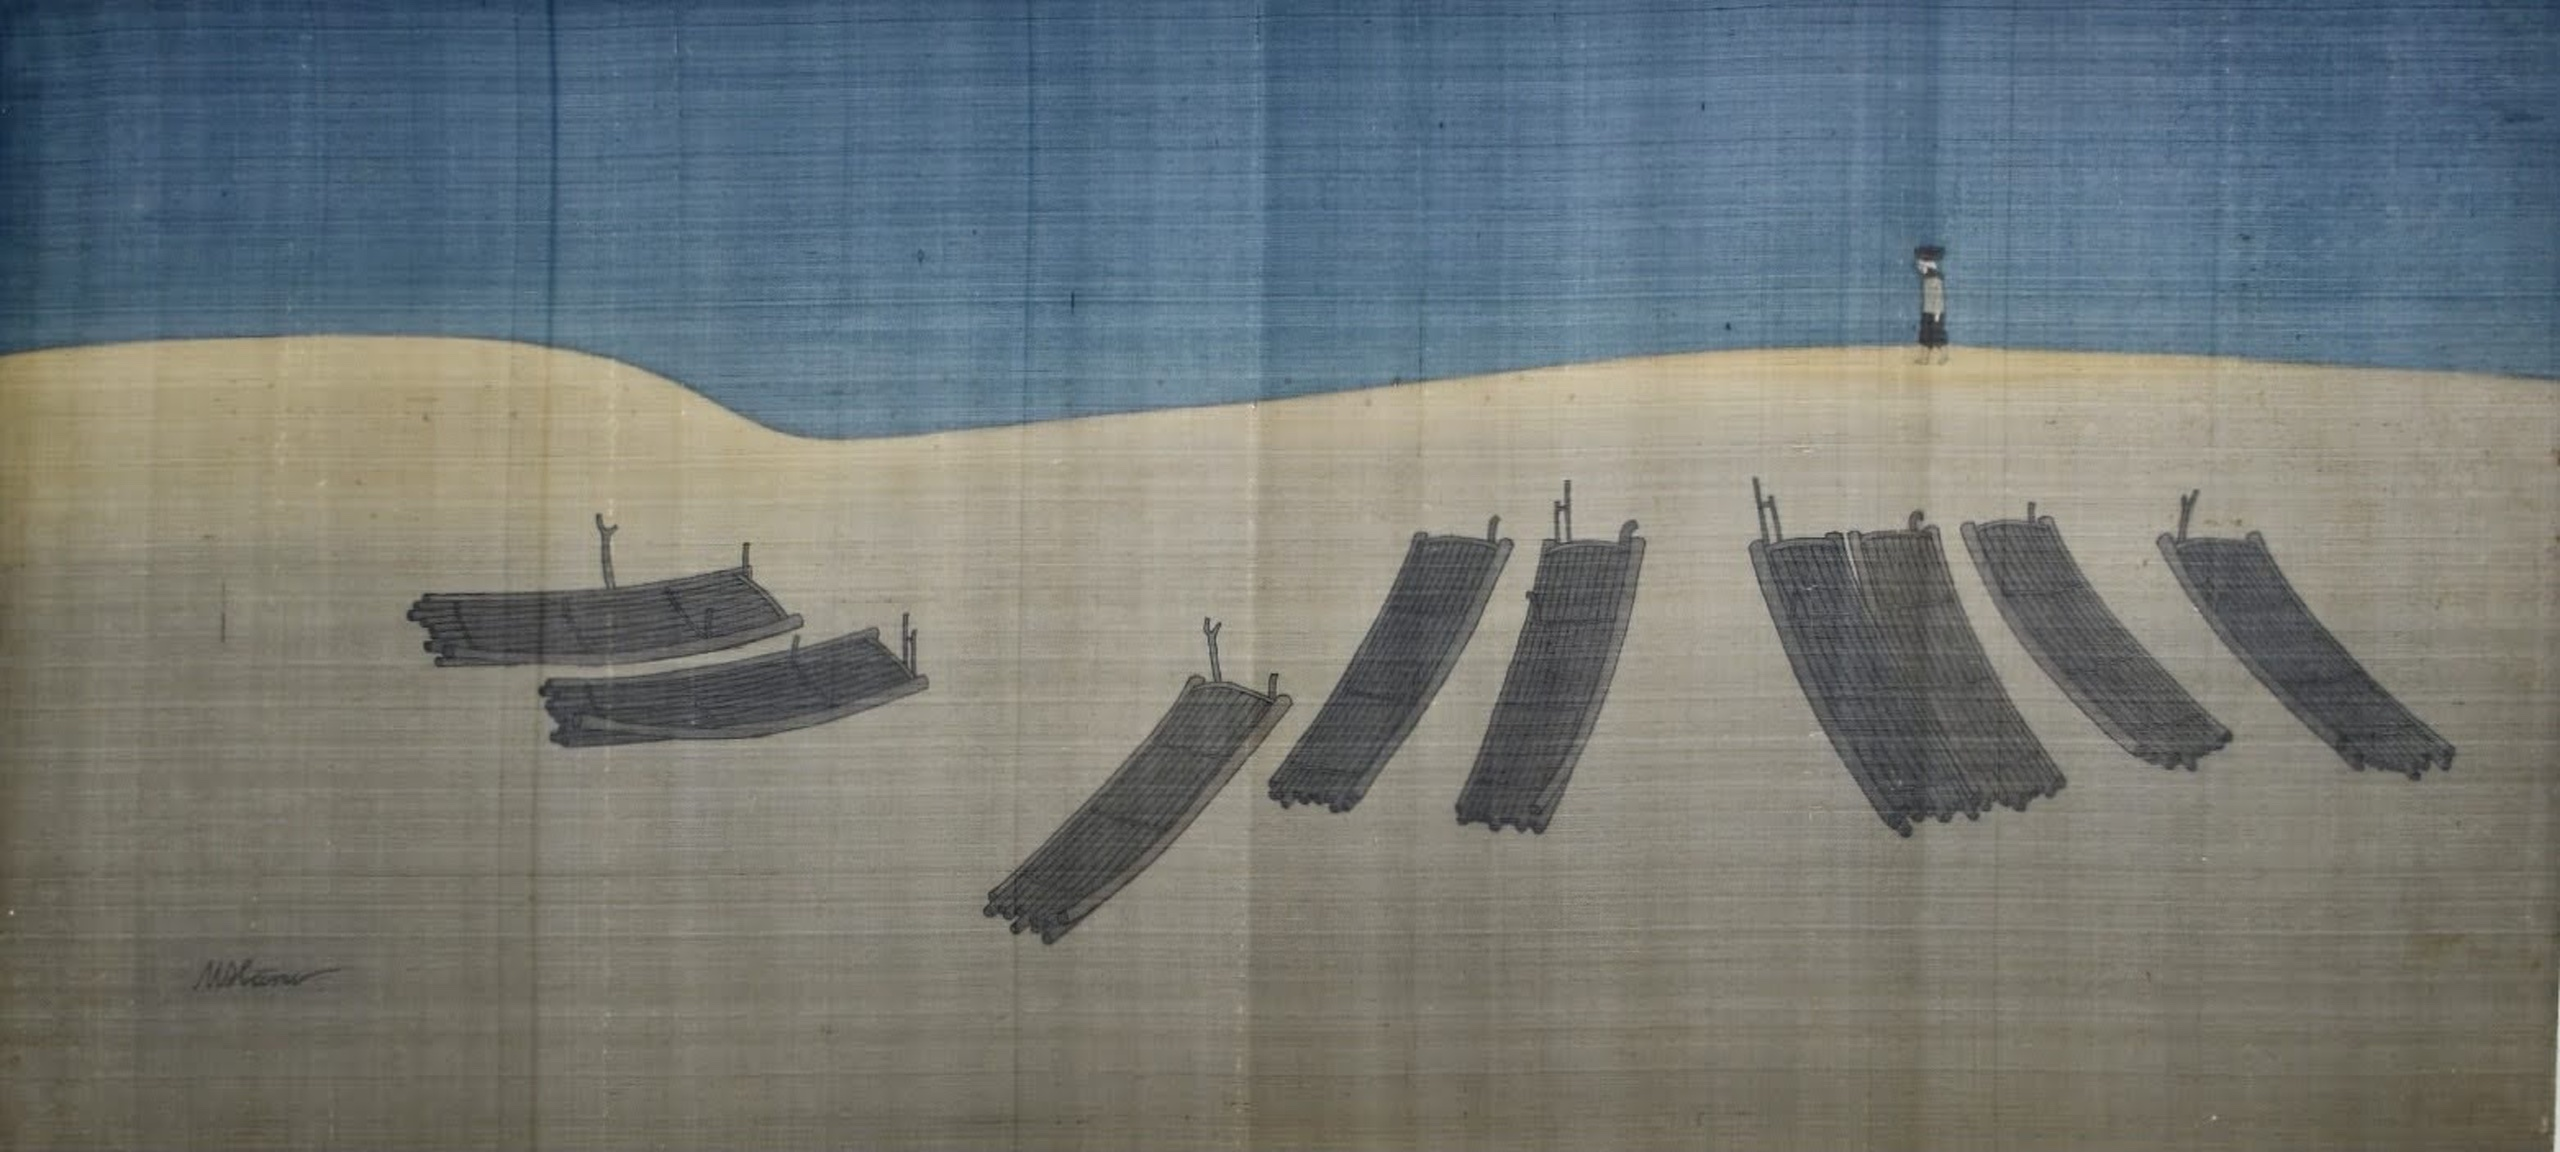 Wooden rafts in Sam Son Beach, silk painting, 75cmx167cm by the artist Hoang Minh Hang in a supplied photo.